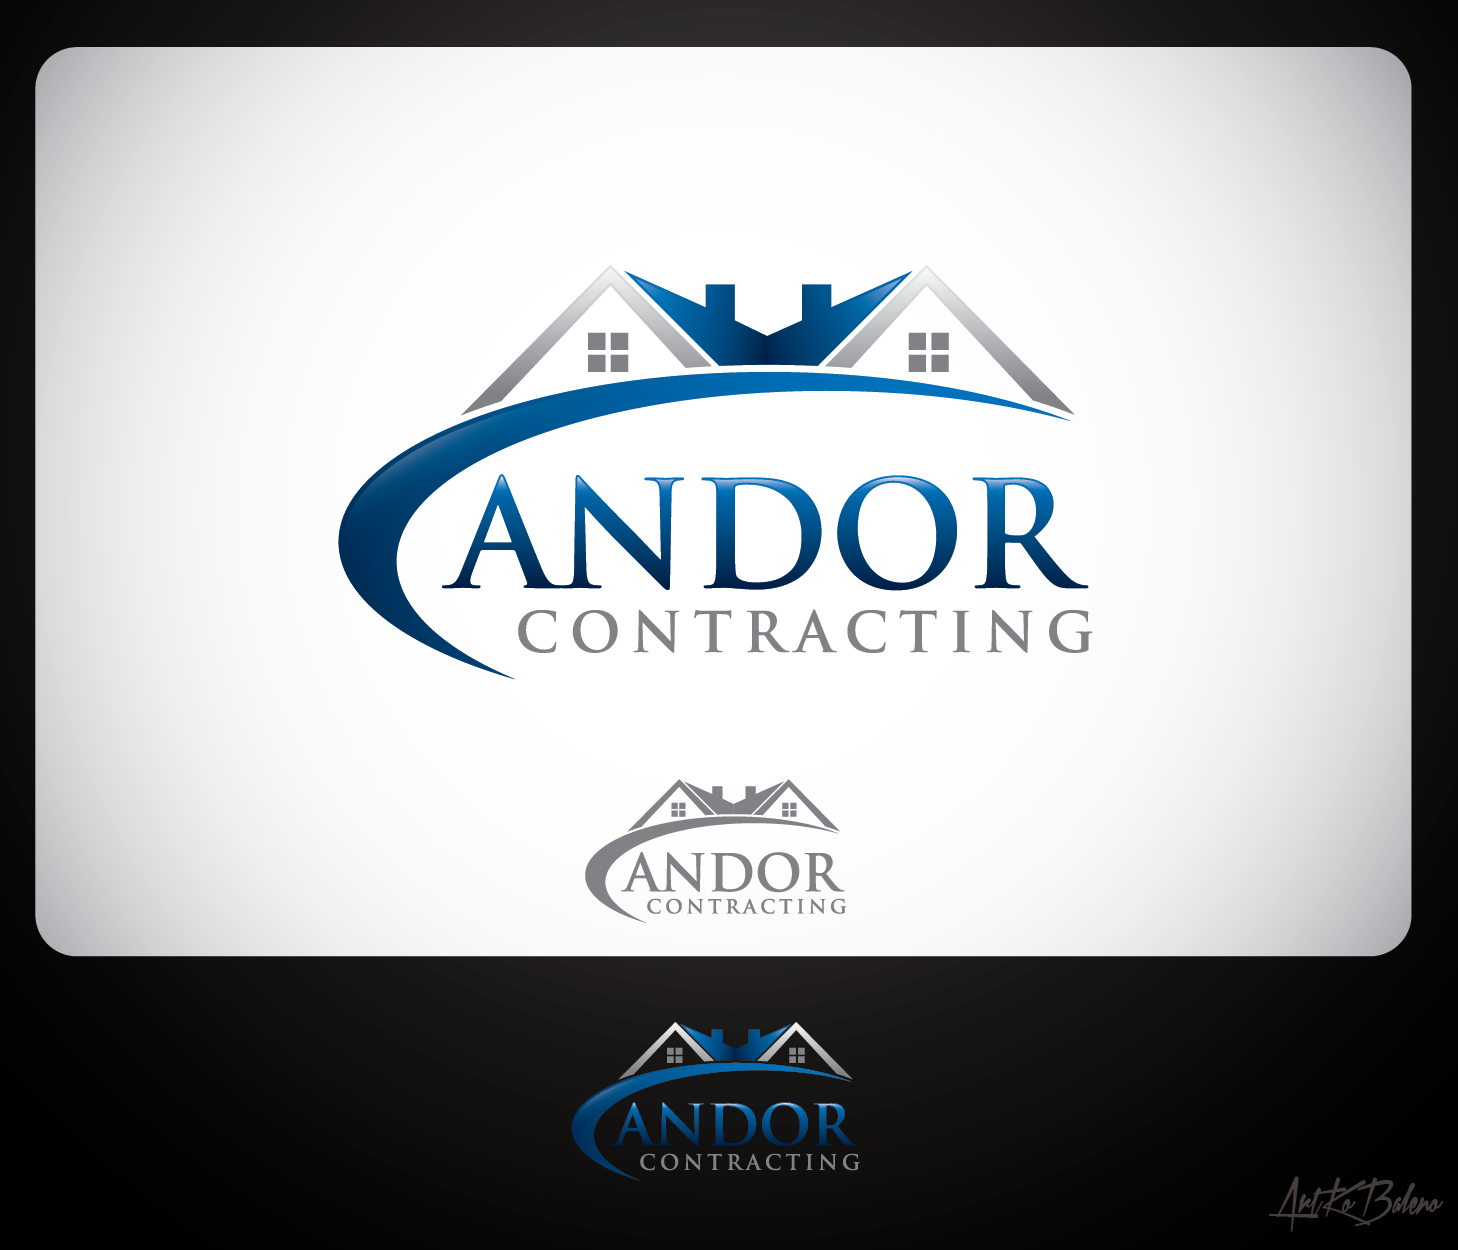 Logo Design Contests Unique Logo Design Wanted For Candor Contracting Design No 65 By